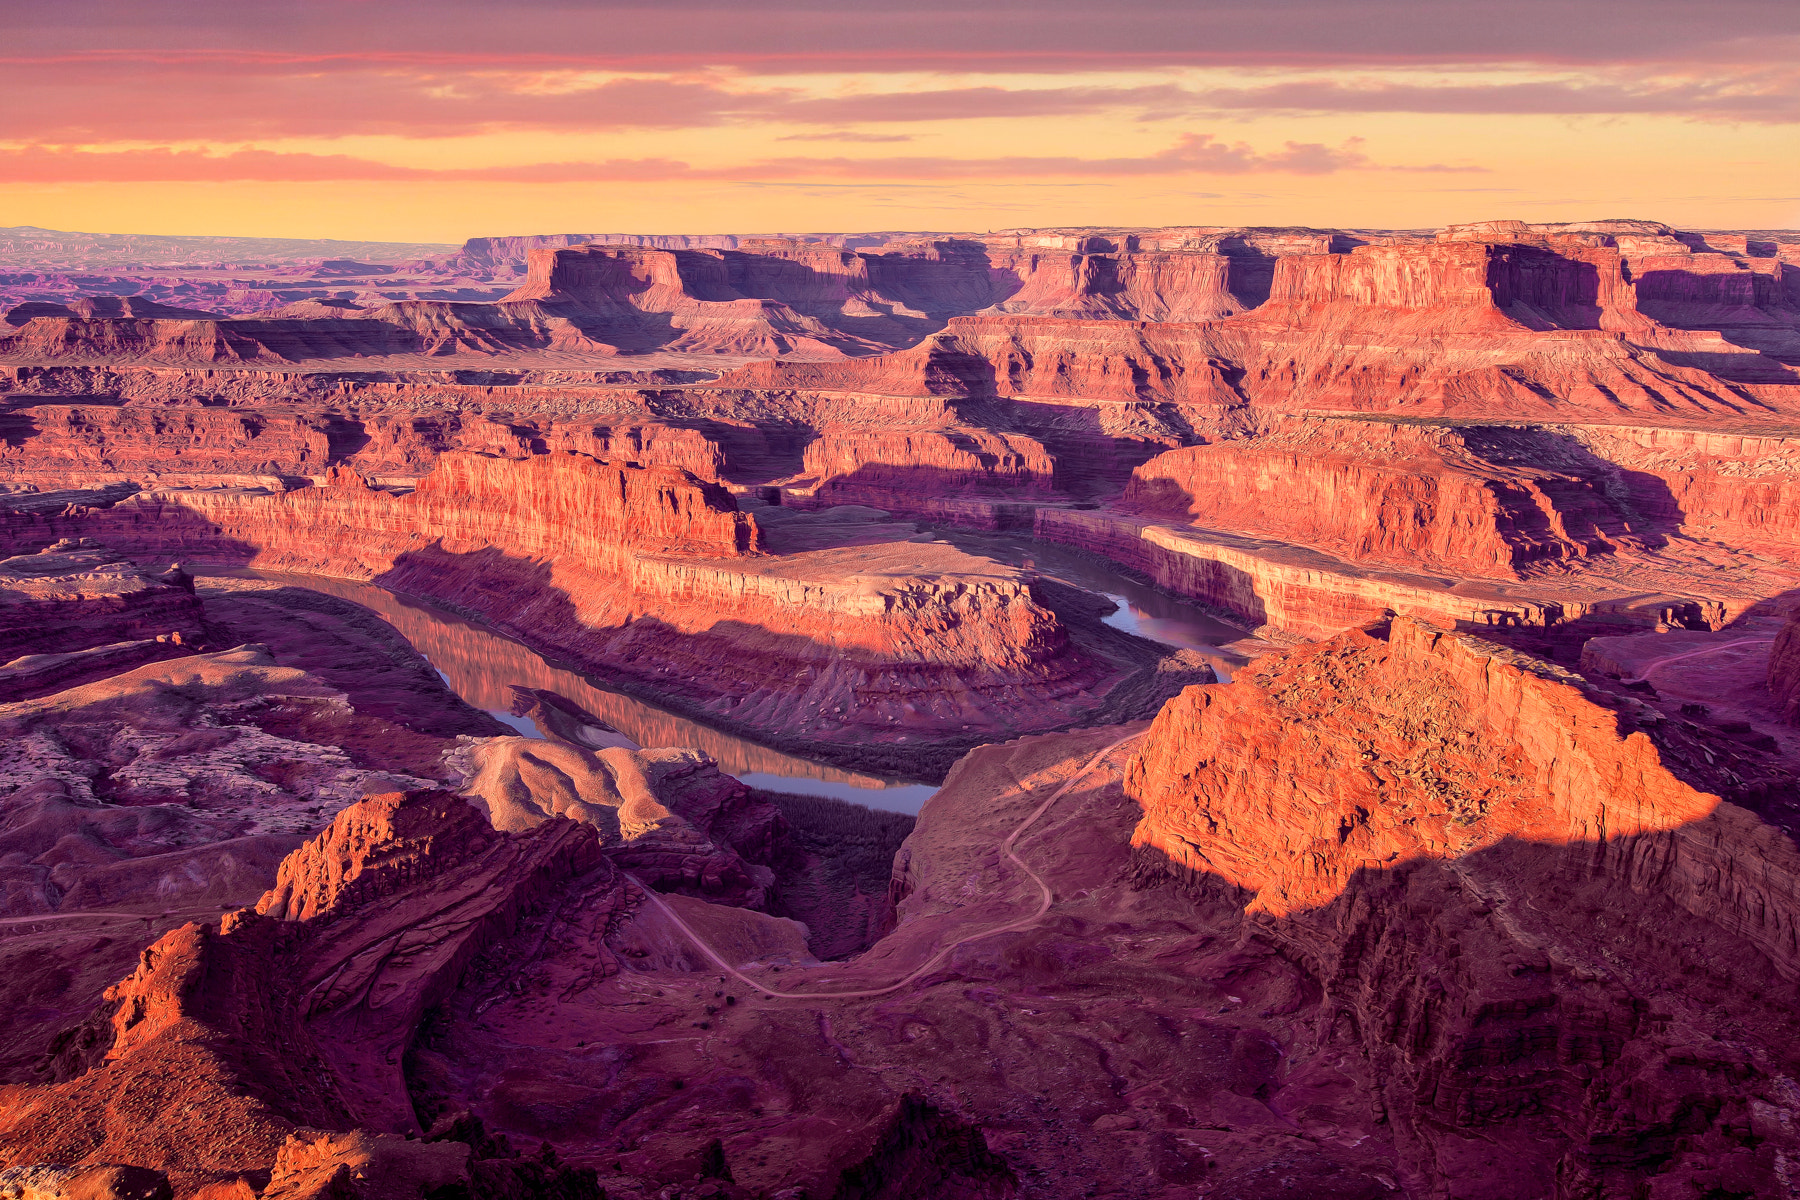 Photograph Dead Horse Point State Park by Stephen Masker on 500px